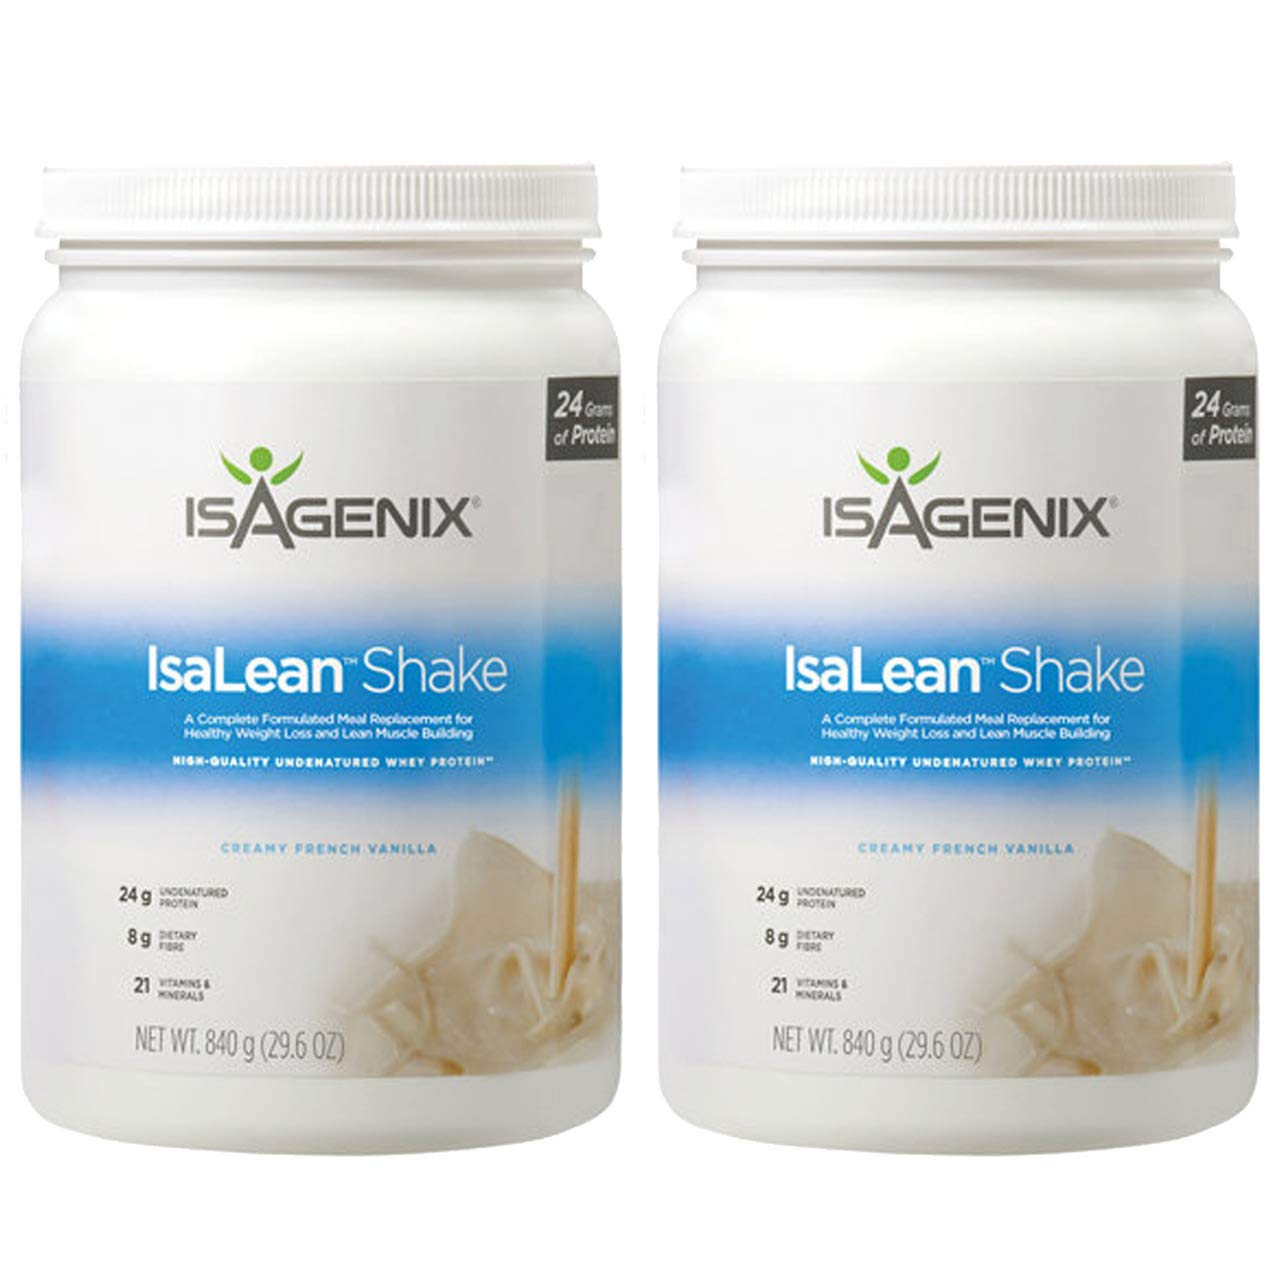 Isagenix Isalean Creamy French Vanilla Shake Combo 29.1oz Canisters (2 Pack) by Isa Shakes Combo (Image #1)